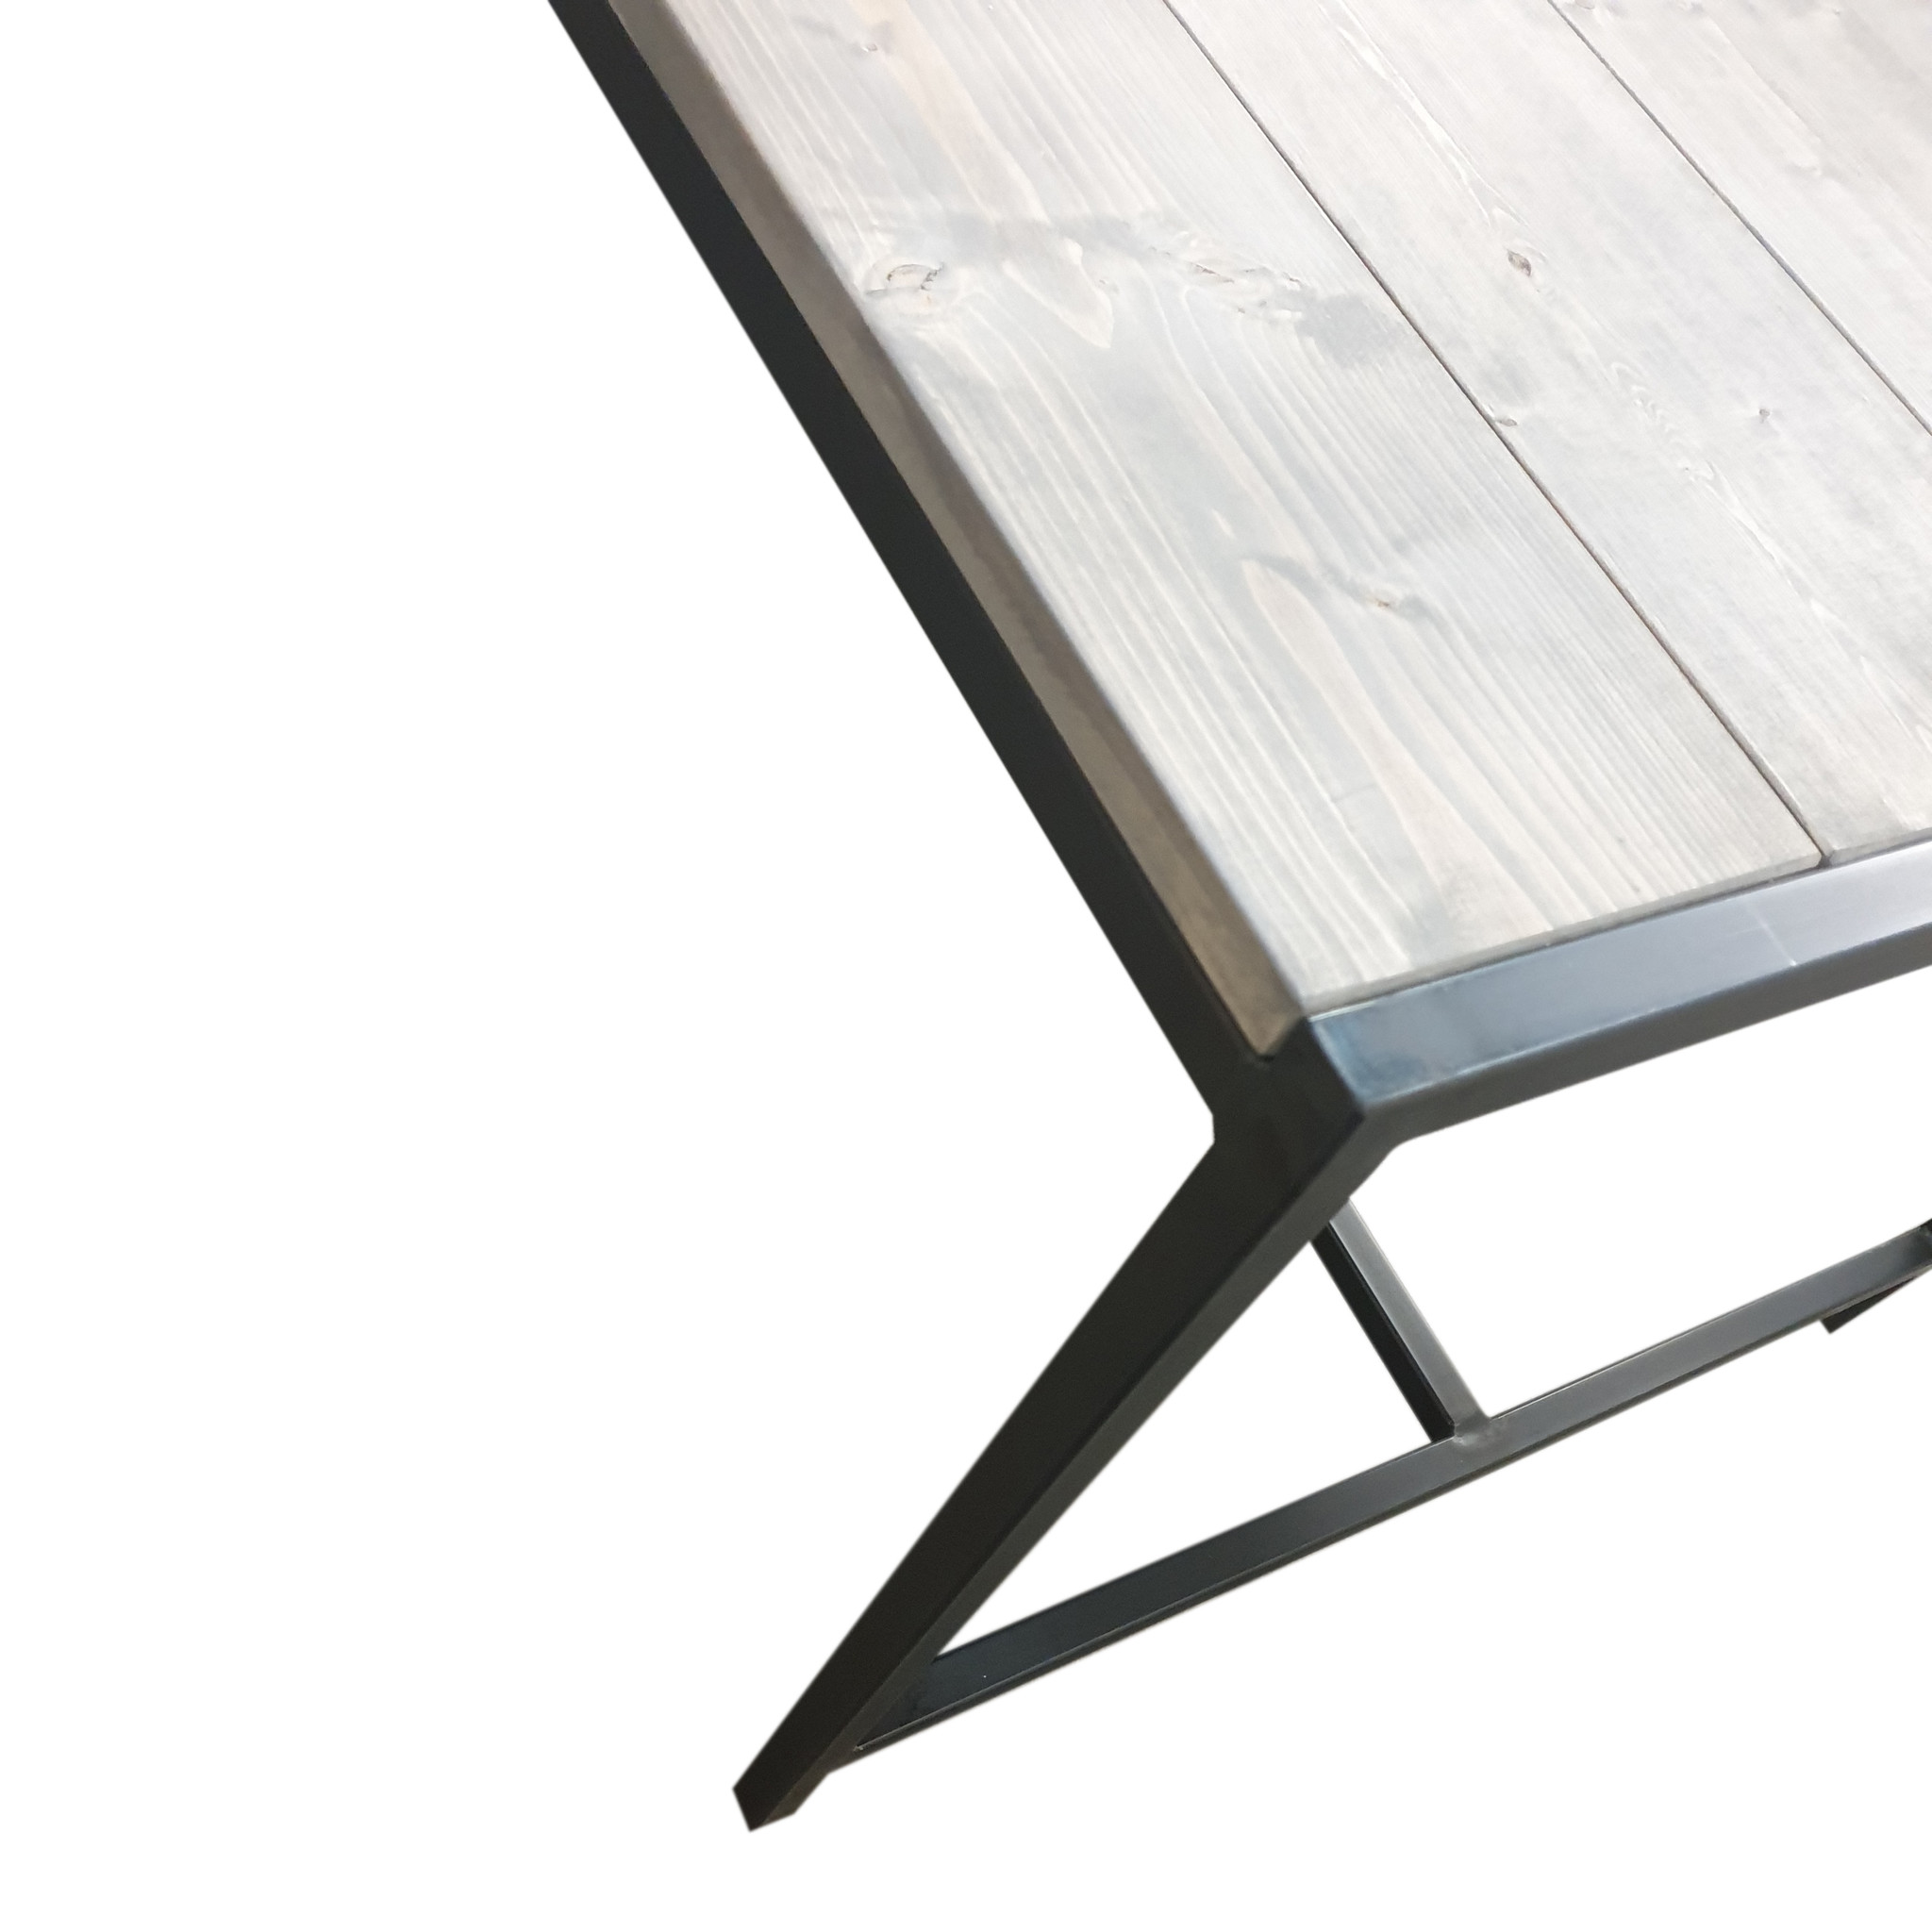 Stoer Metaal dining table Stoer46